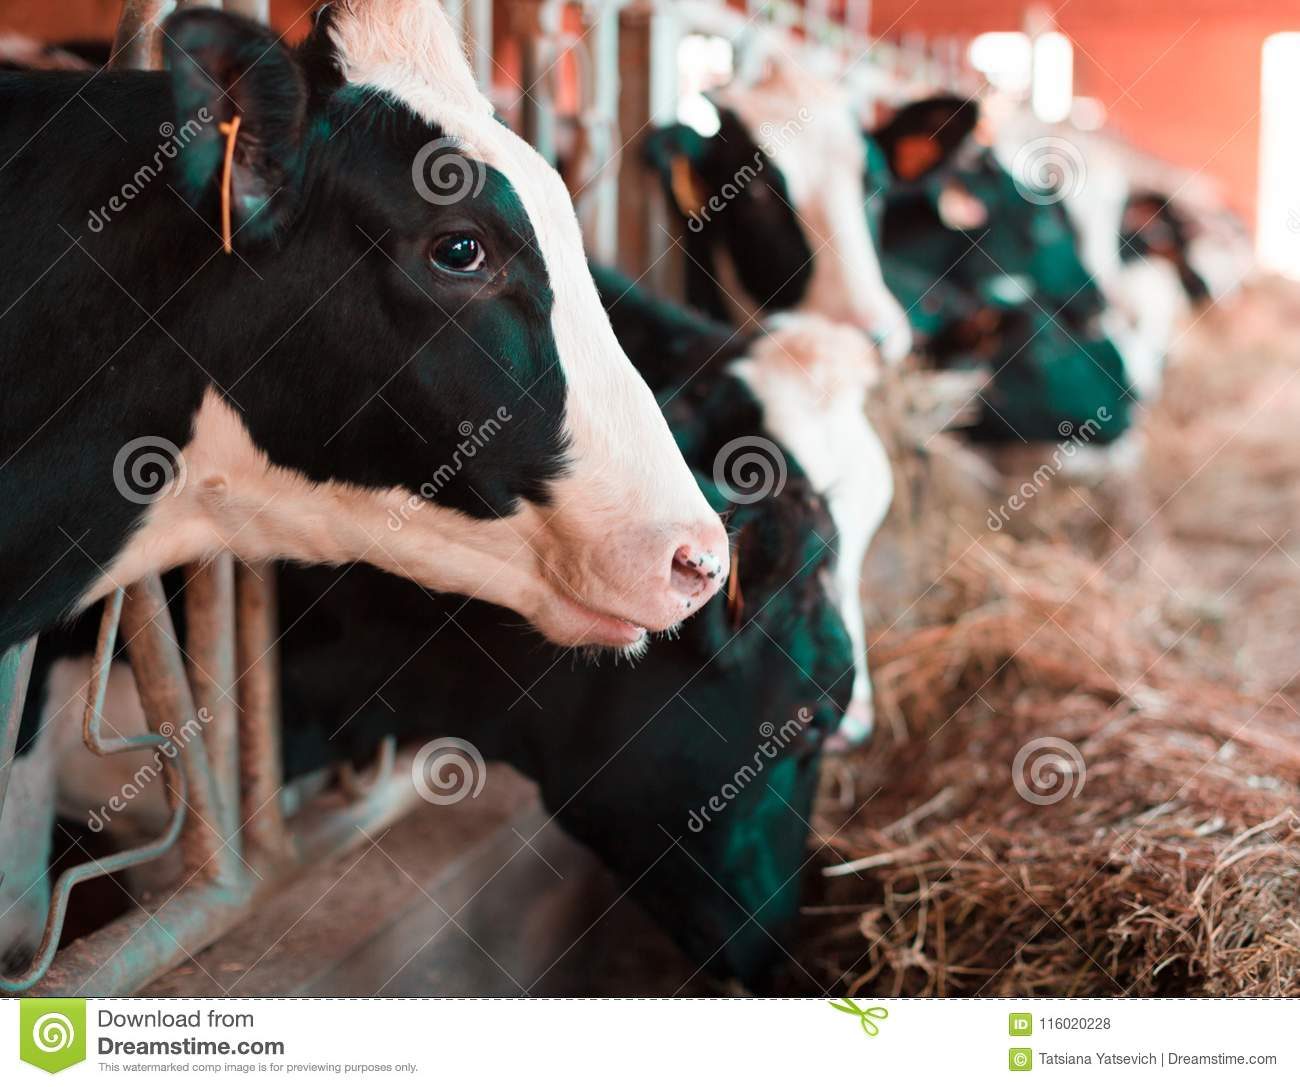 Cow chewing food on farm